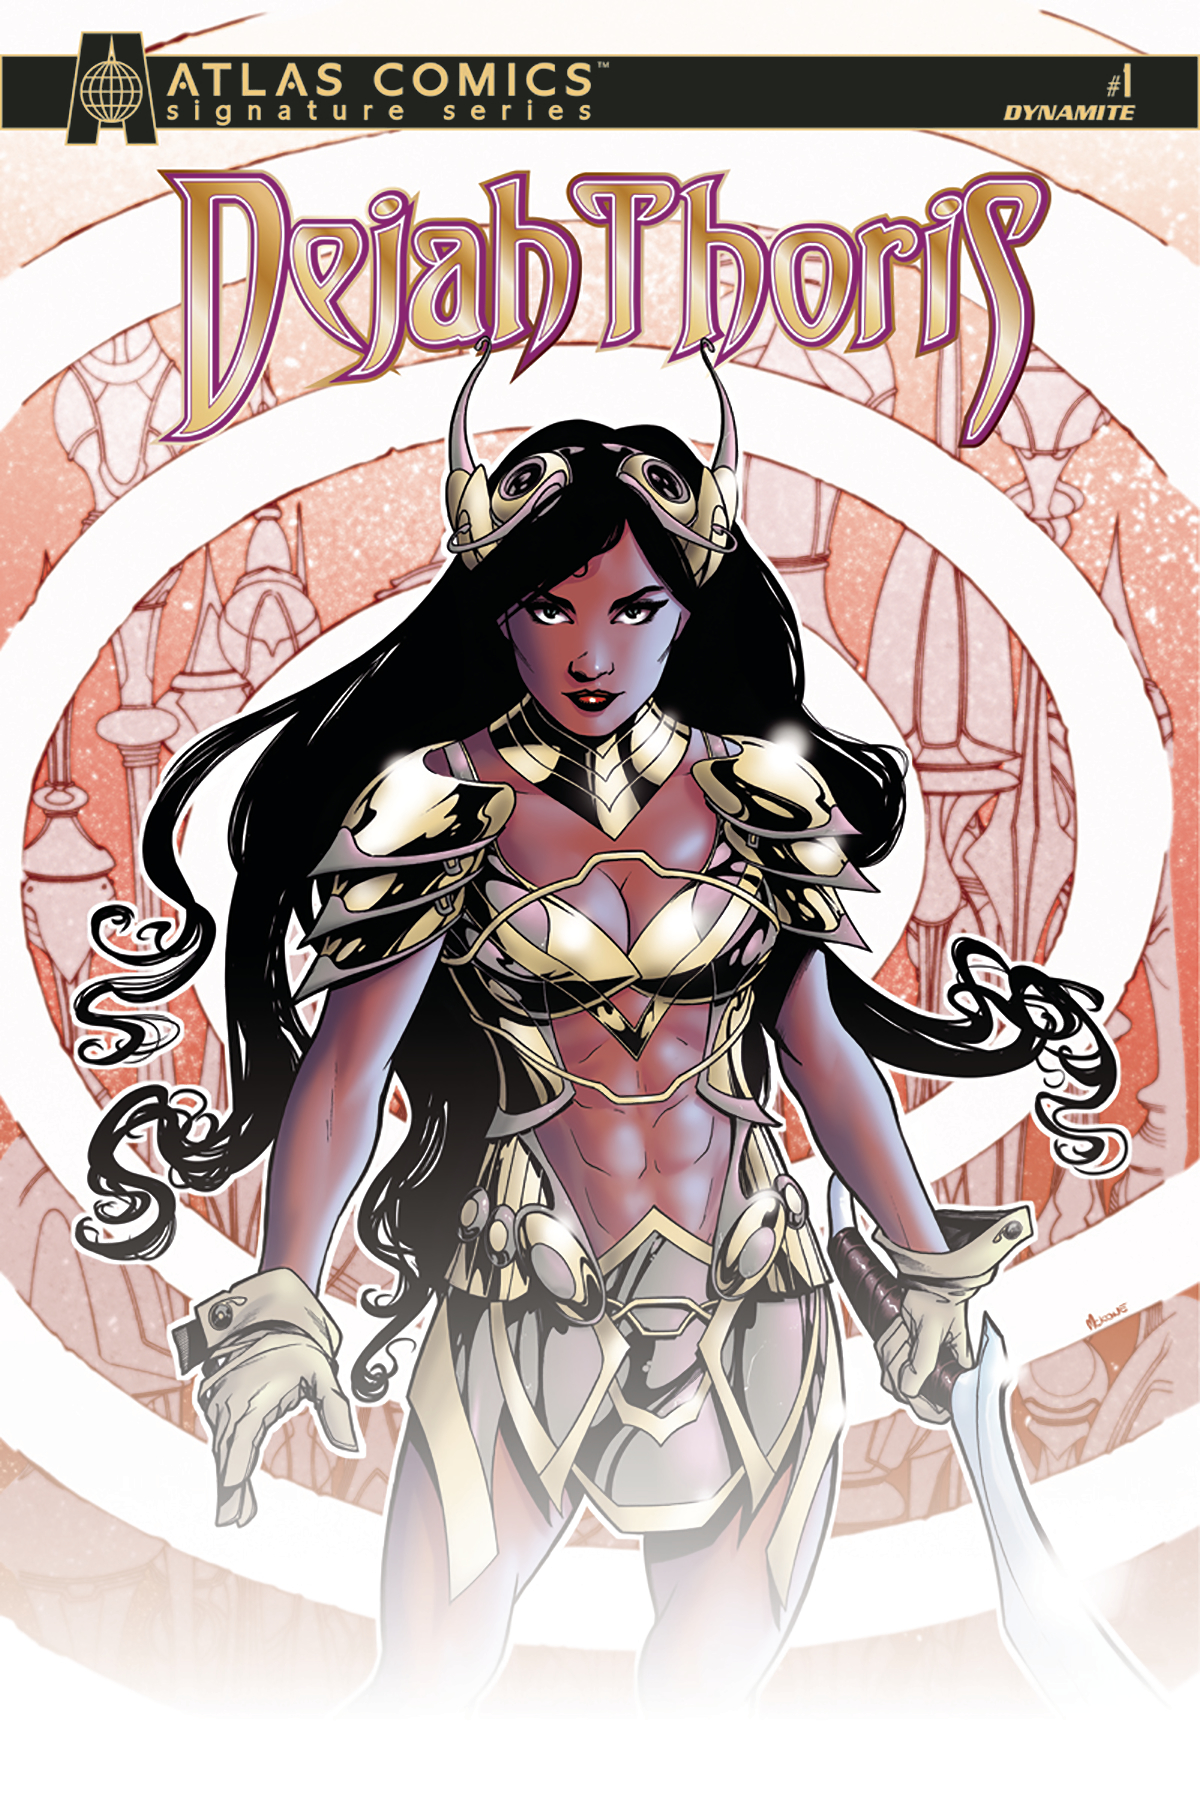 DEJAH THORIS #1 ATLAS COMICS CHU SGN